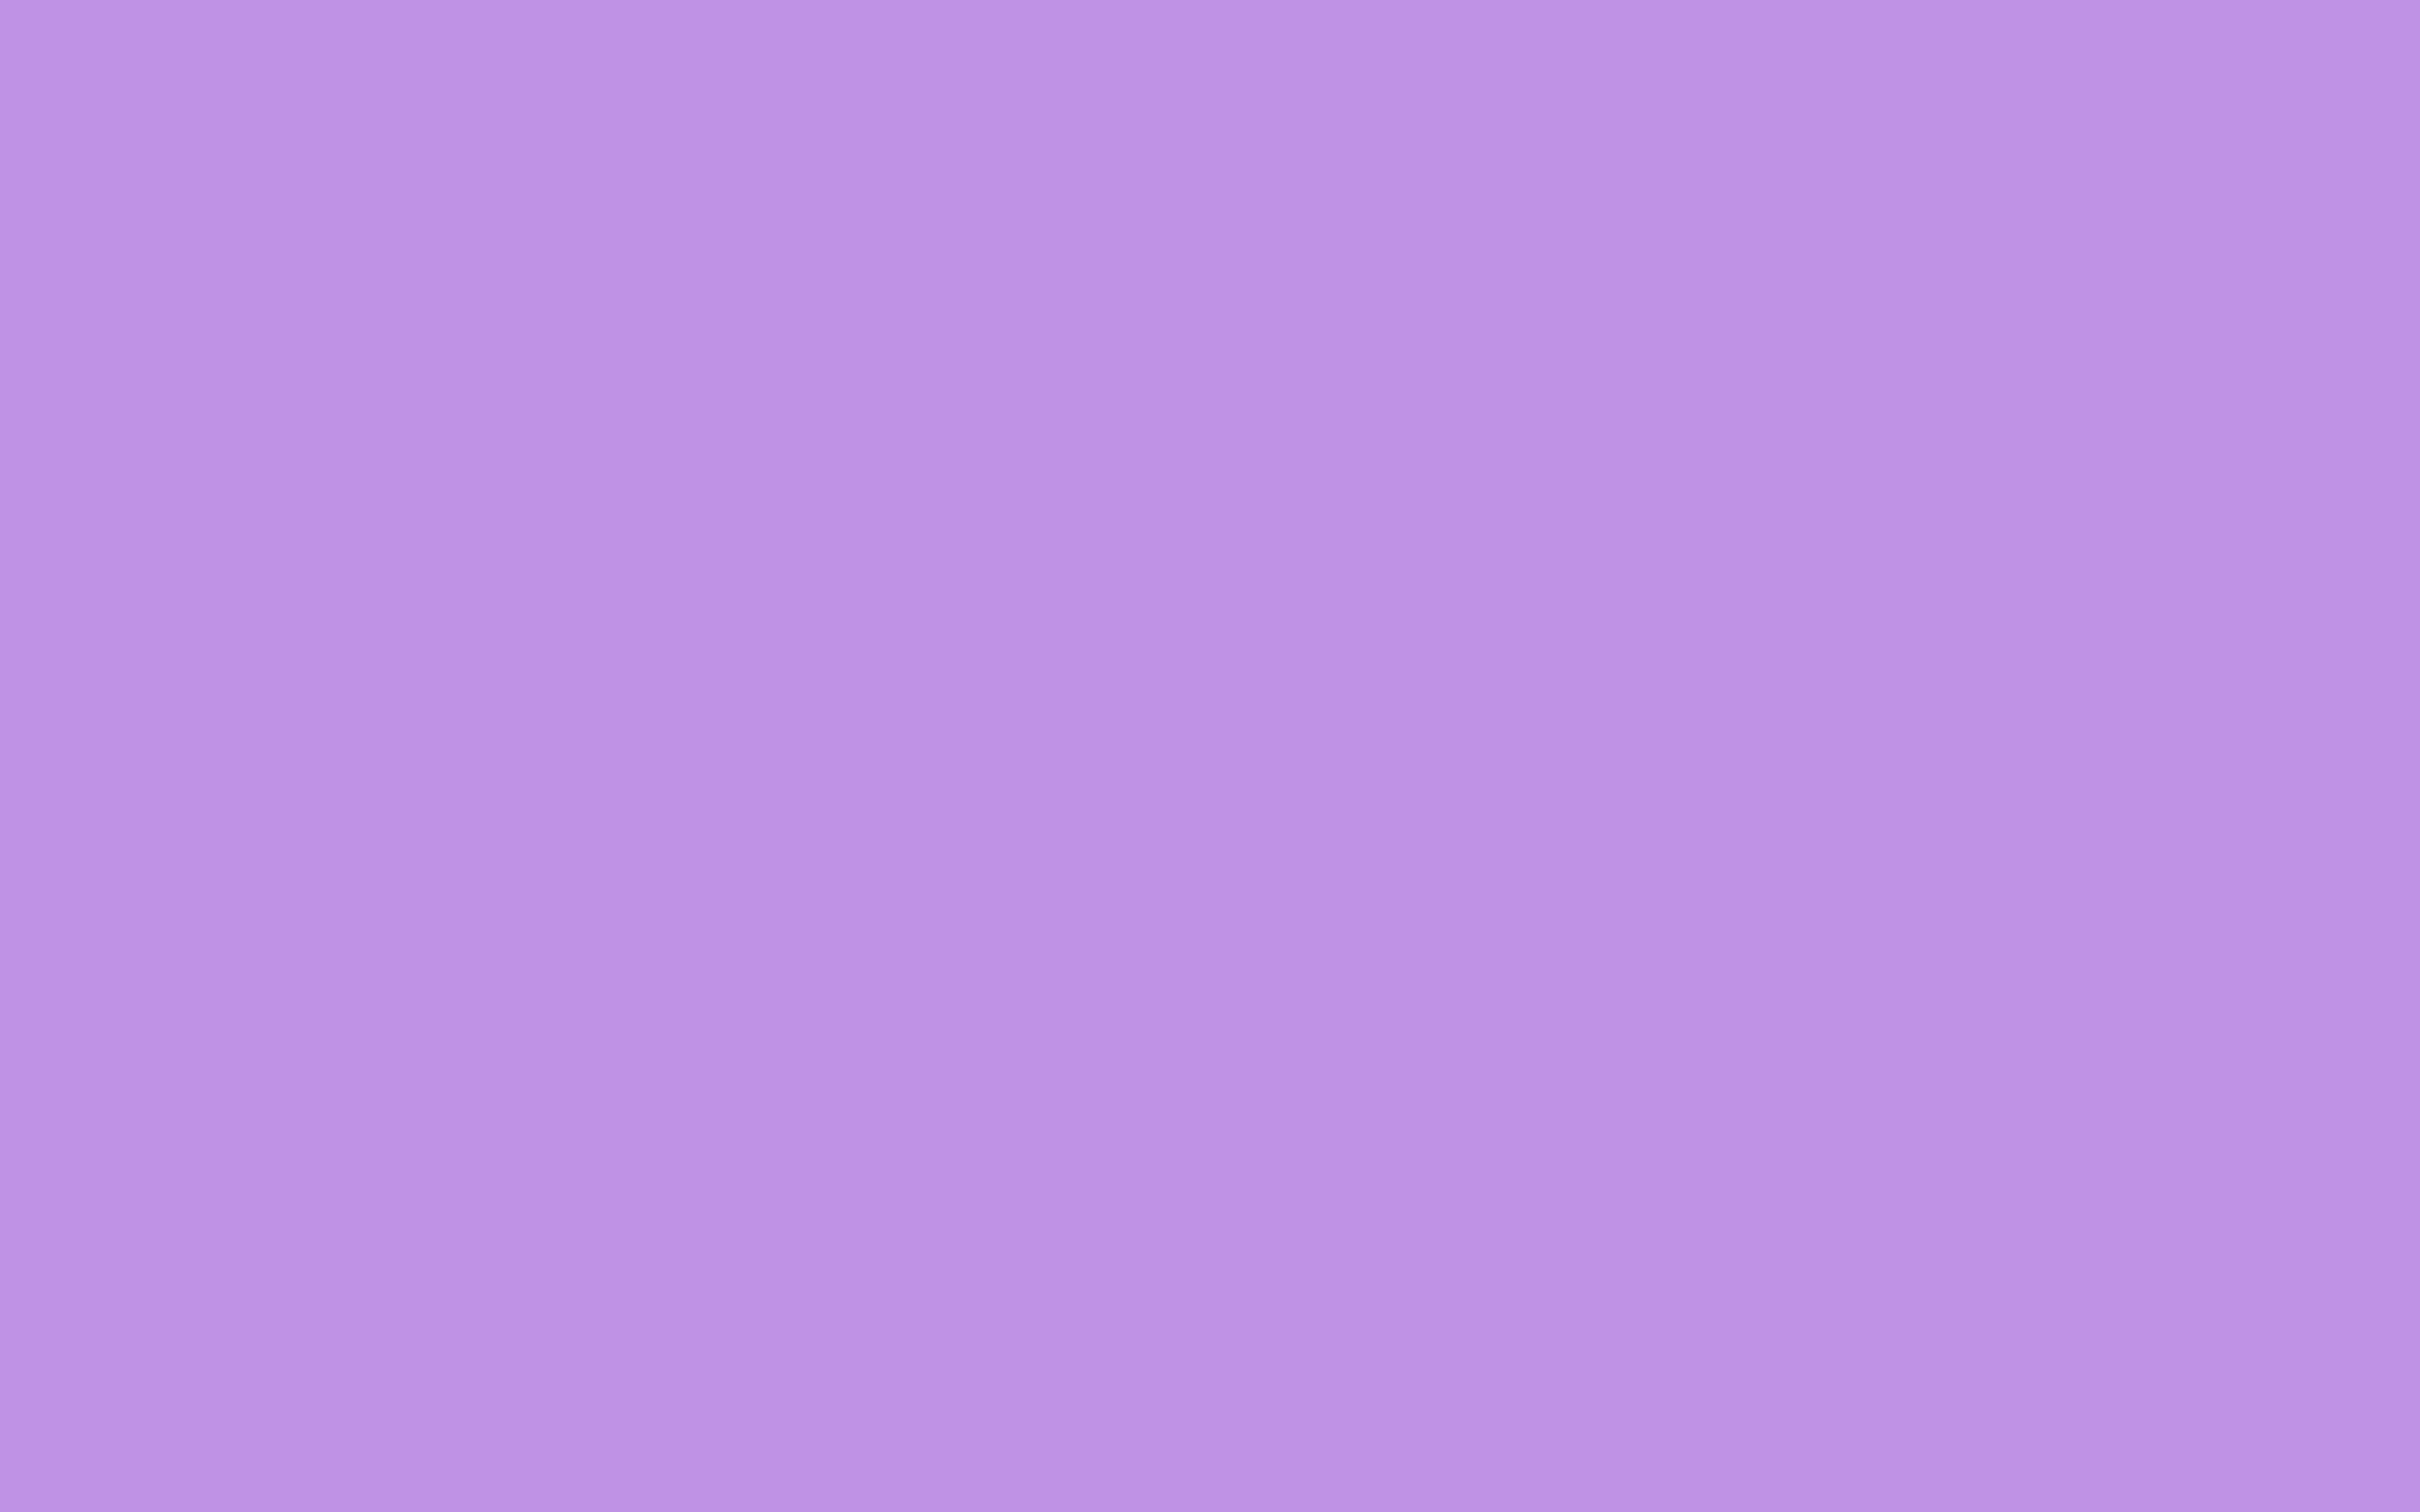 wallpaper bright line purple - photo #16